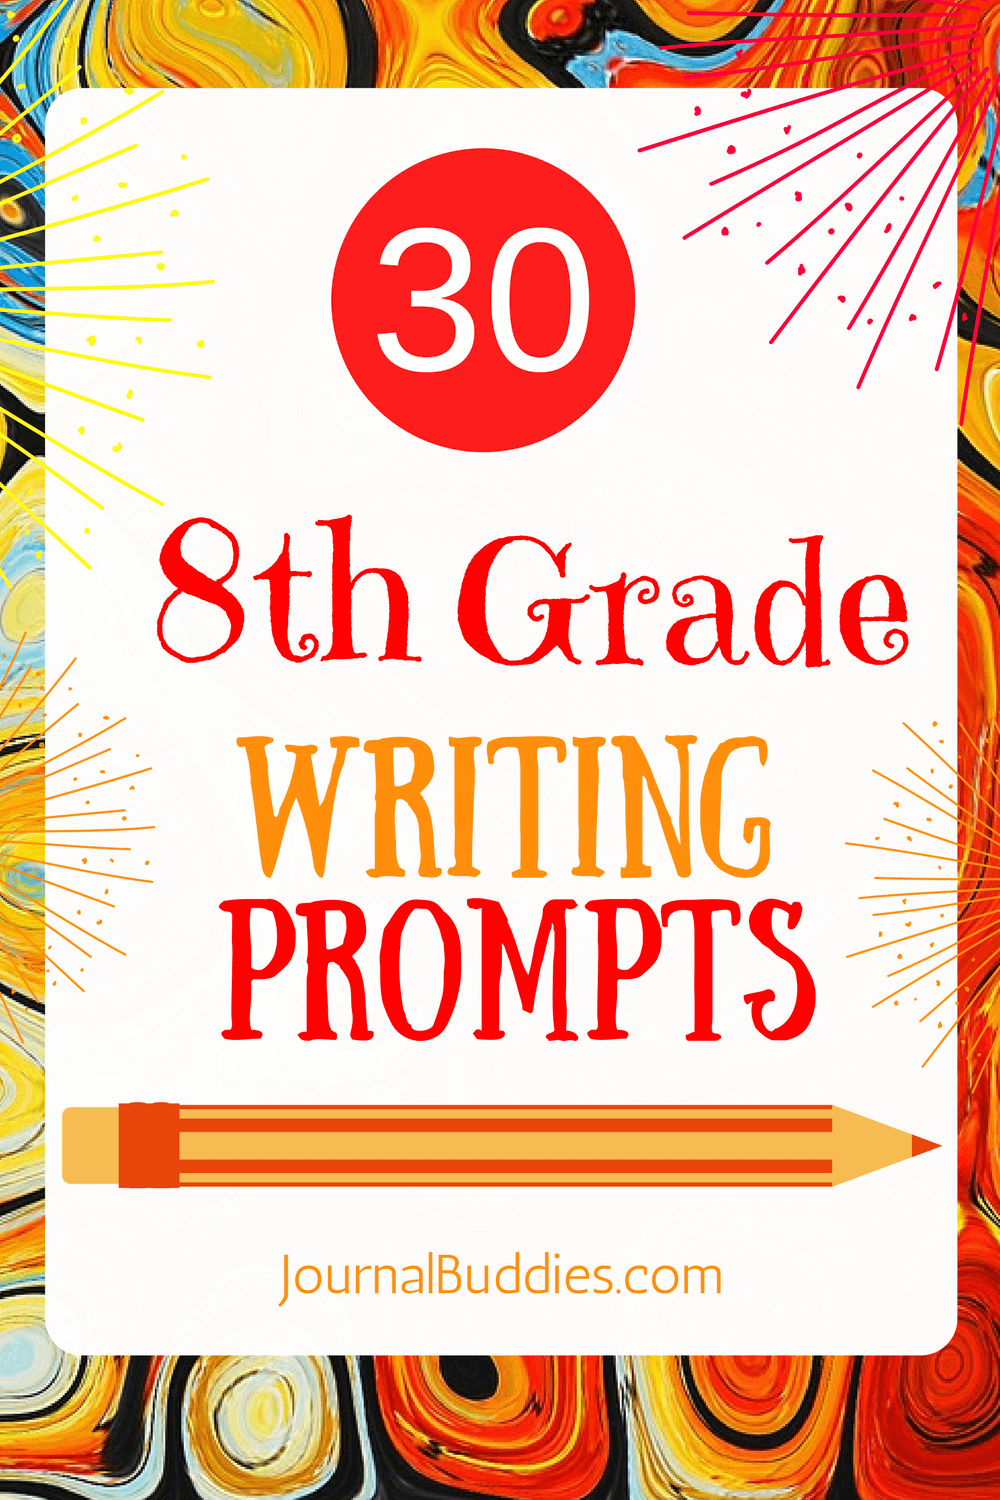 30 New 8th Grade Writing Prompts